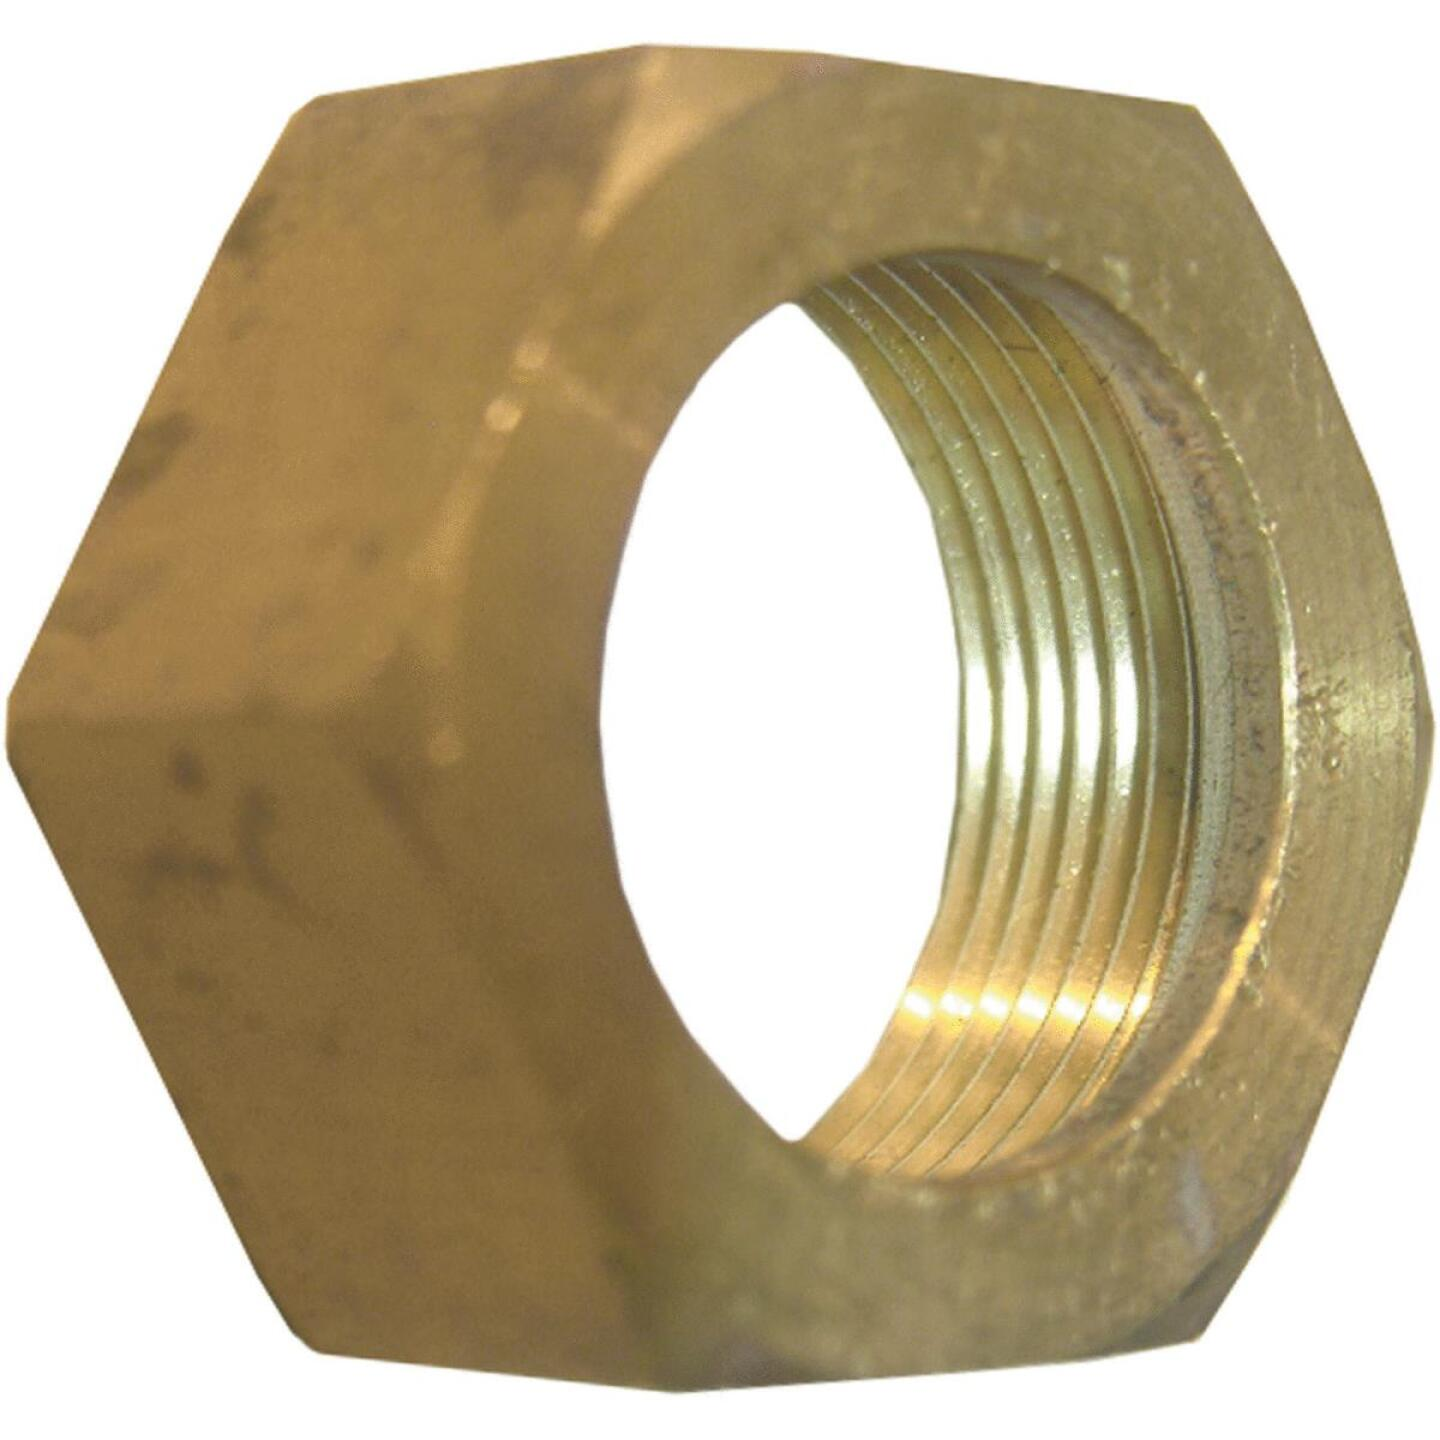 Lasco 3/8 In. Compression Nut and Sleeve Image 1